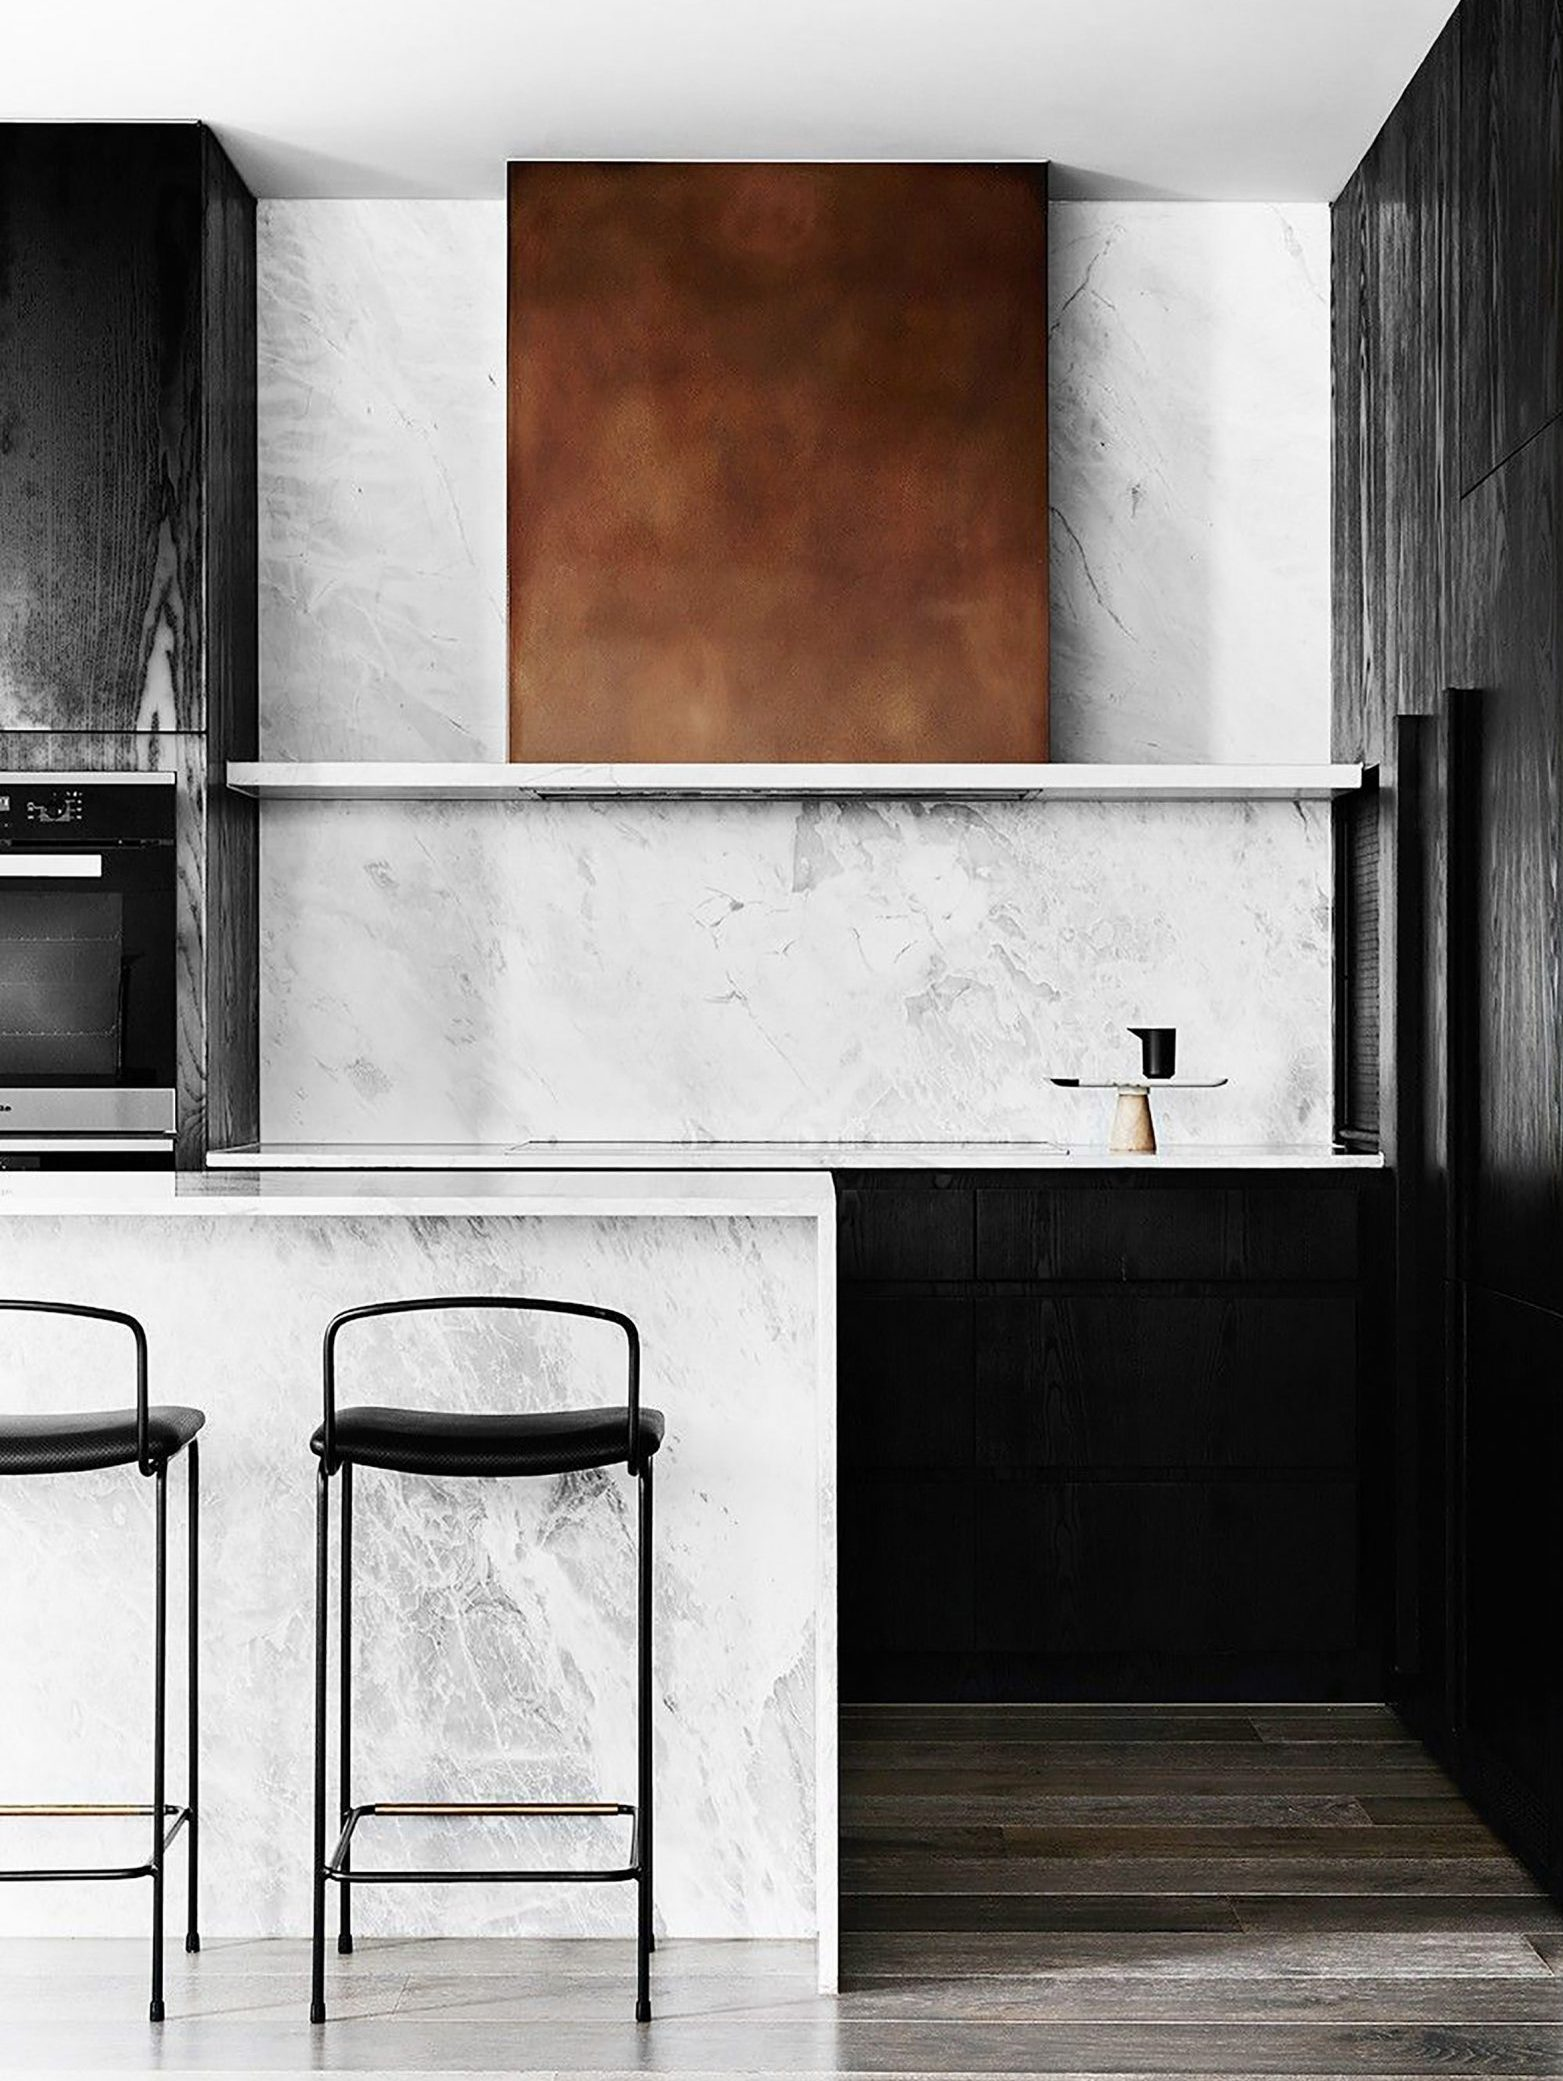 Clever storage solutions: induction cooktops, integrated refrigerators, stoves, microwaves and — most important — range hoods that don't look anything like they use to! Note the copper-y finish on the range hood. Slick!!